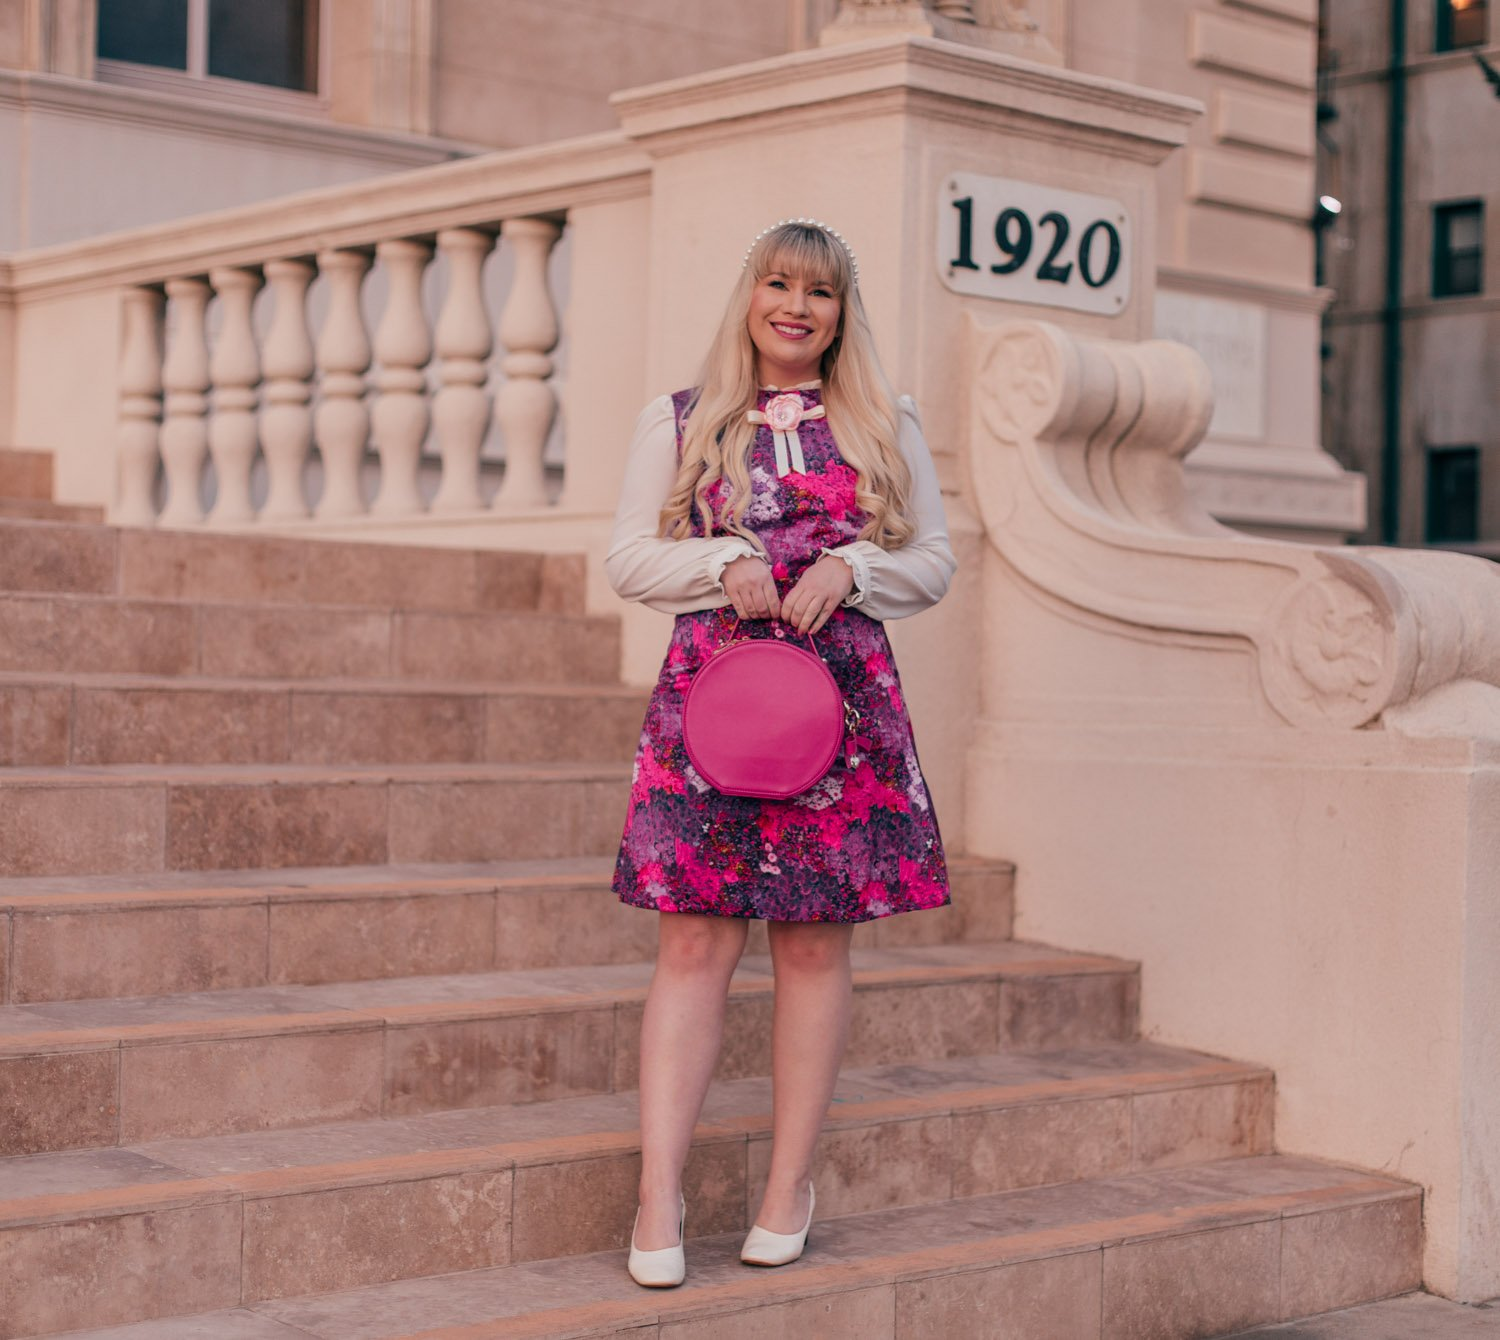 Feminine Fashion Blogger Elizabeth Hugen of Lizzie in Lace wears a hot pink girly outfit for spring